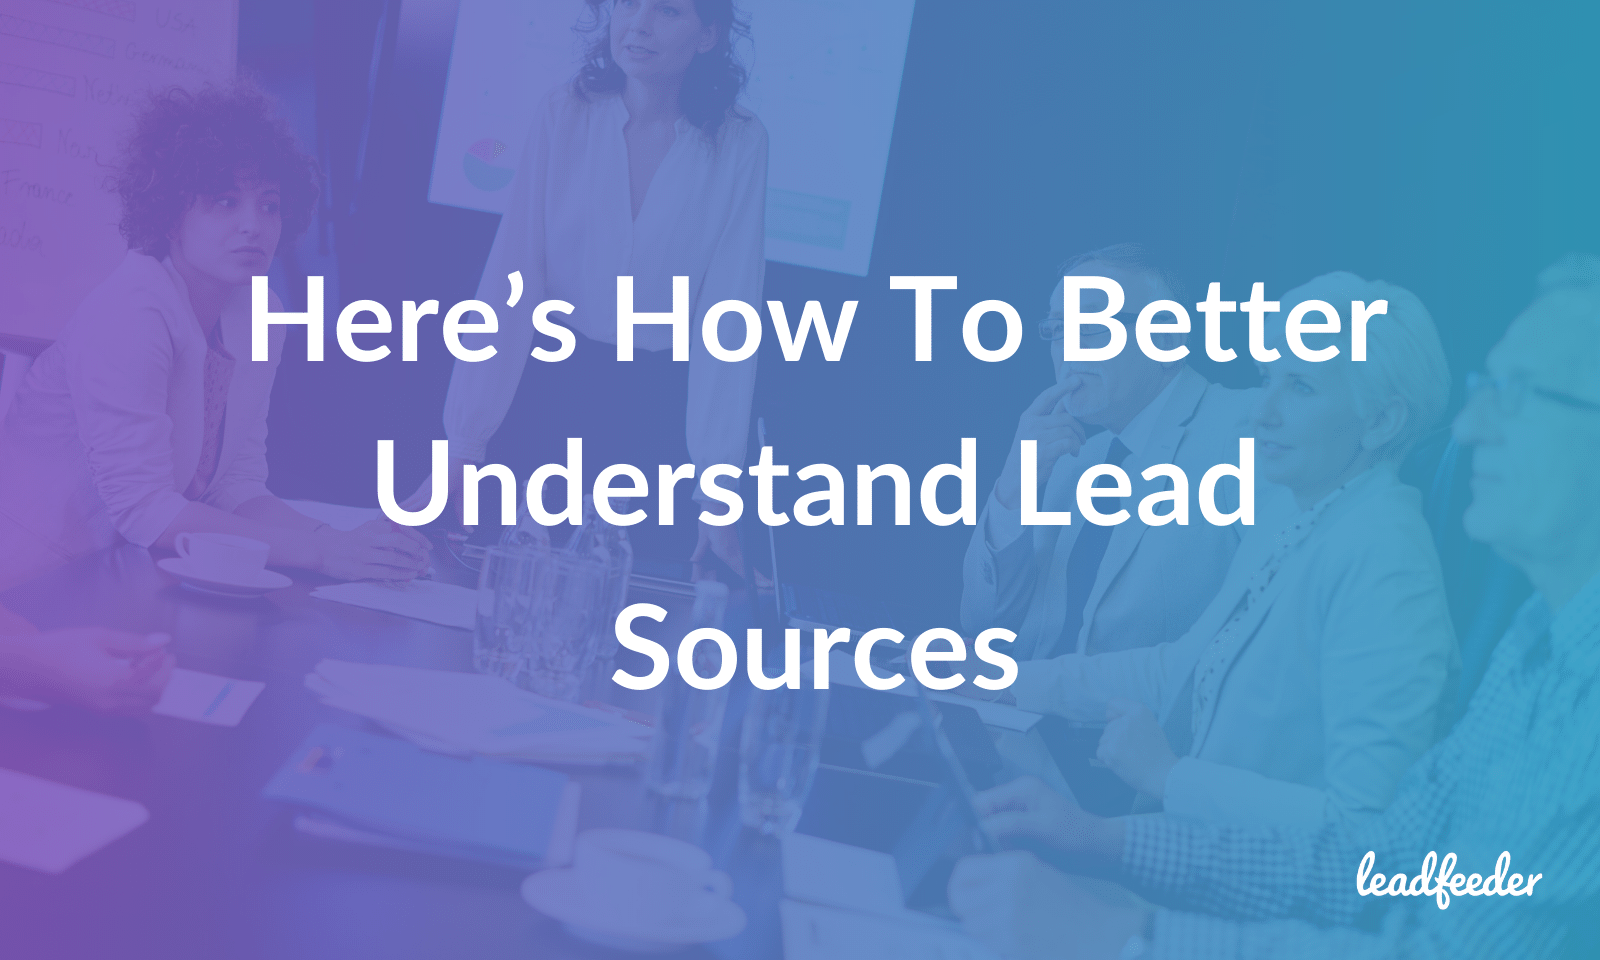 Lead source header image. Here's how to better understand lead sources